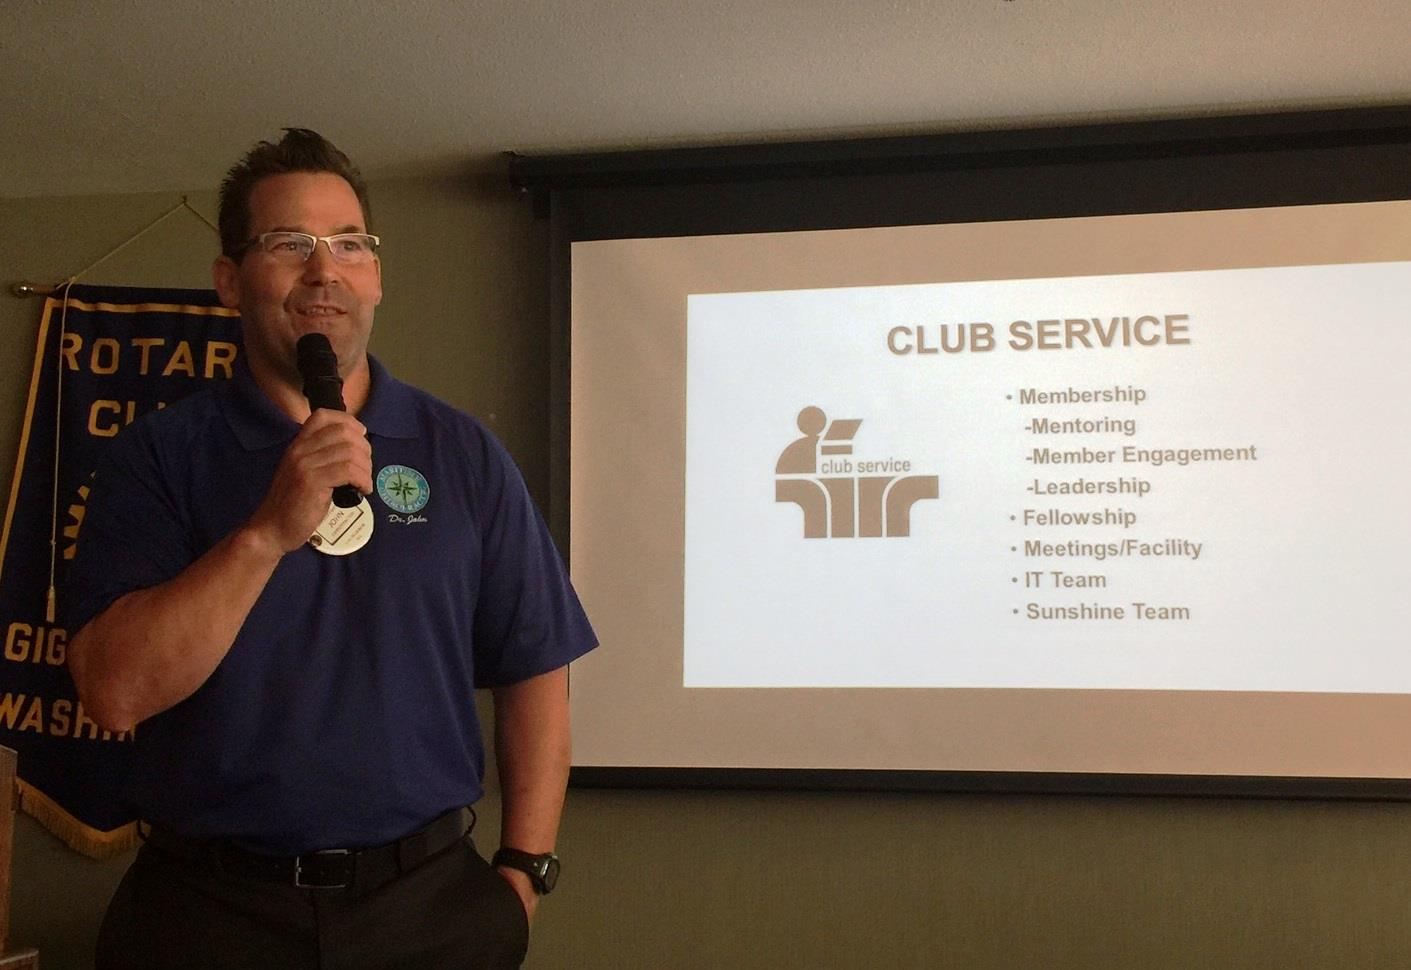 President Mel's First meeting july 7, 2017 | Rotary Club of Gig Harbor